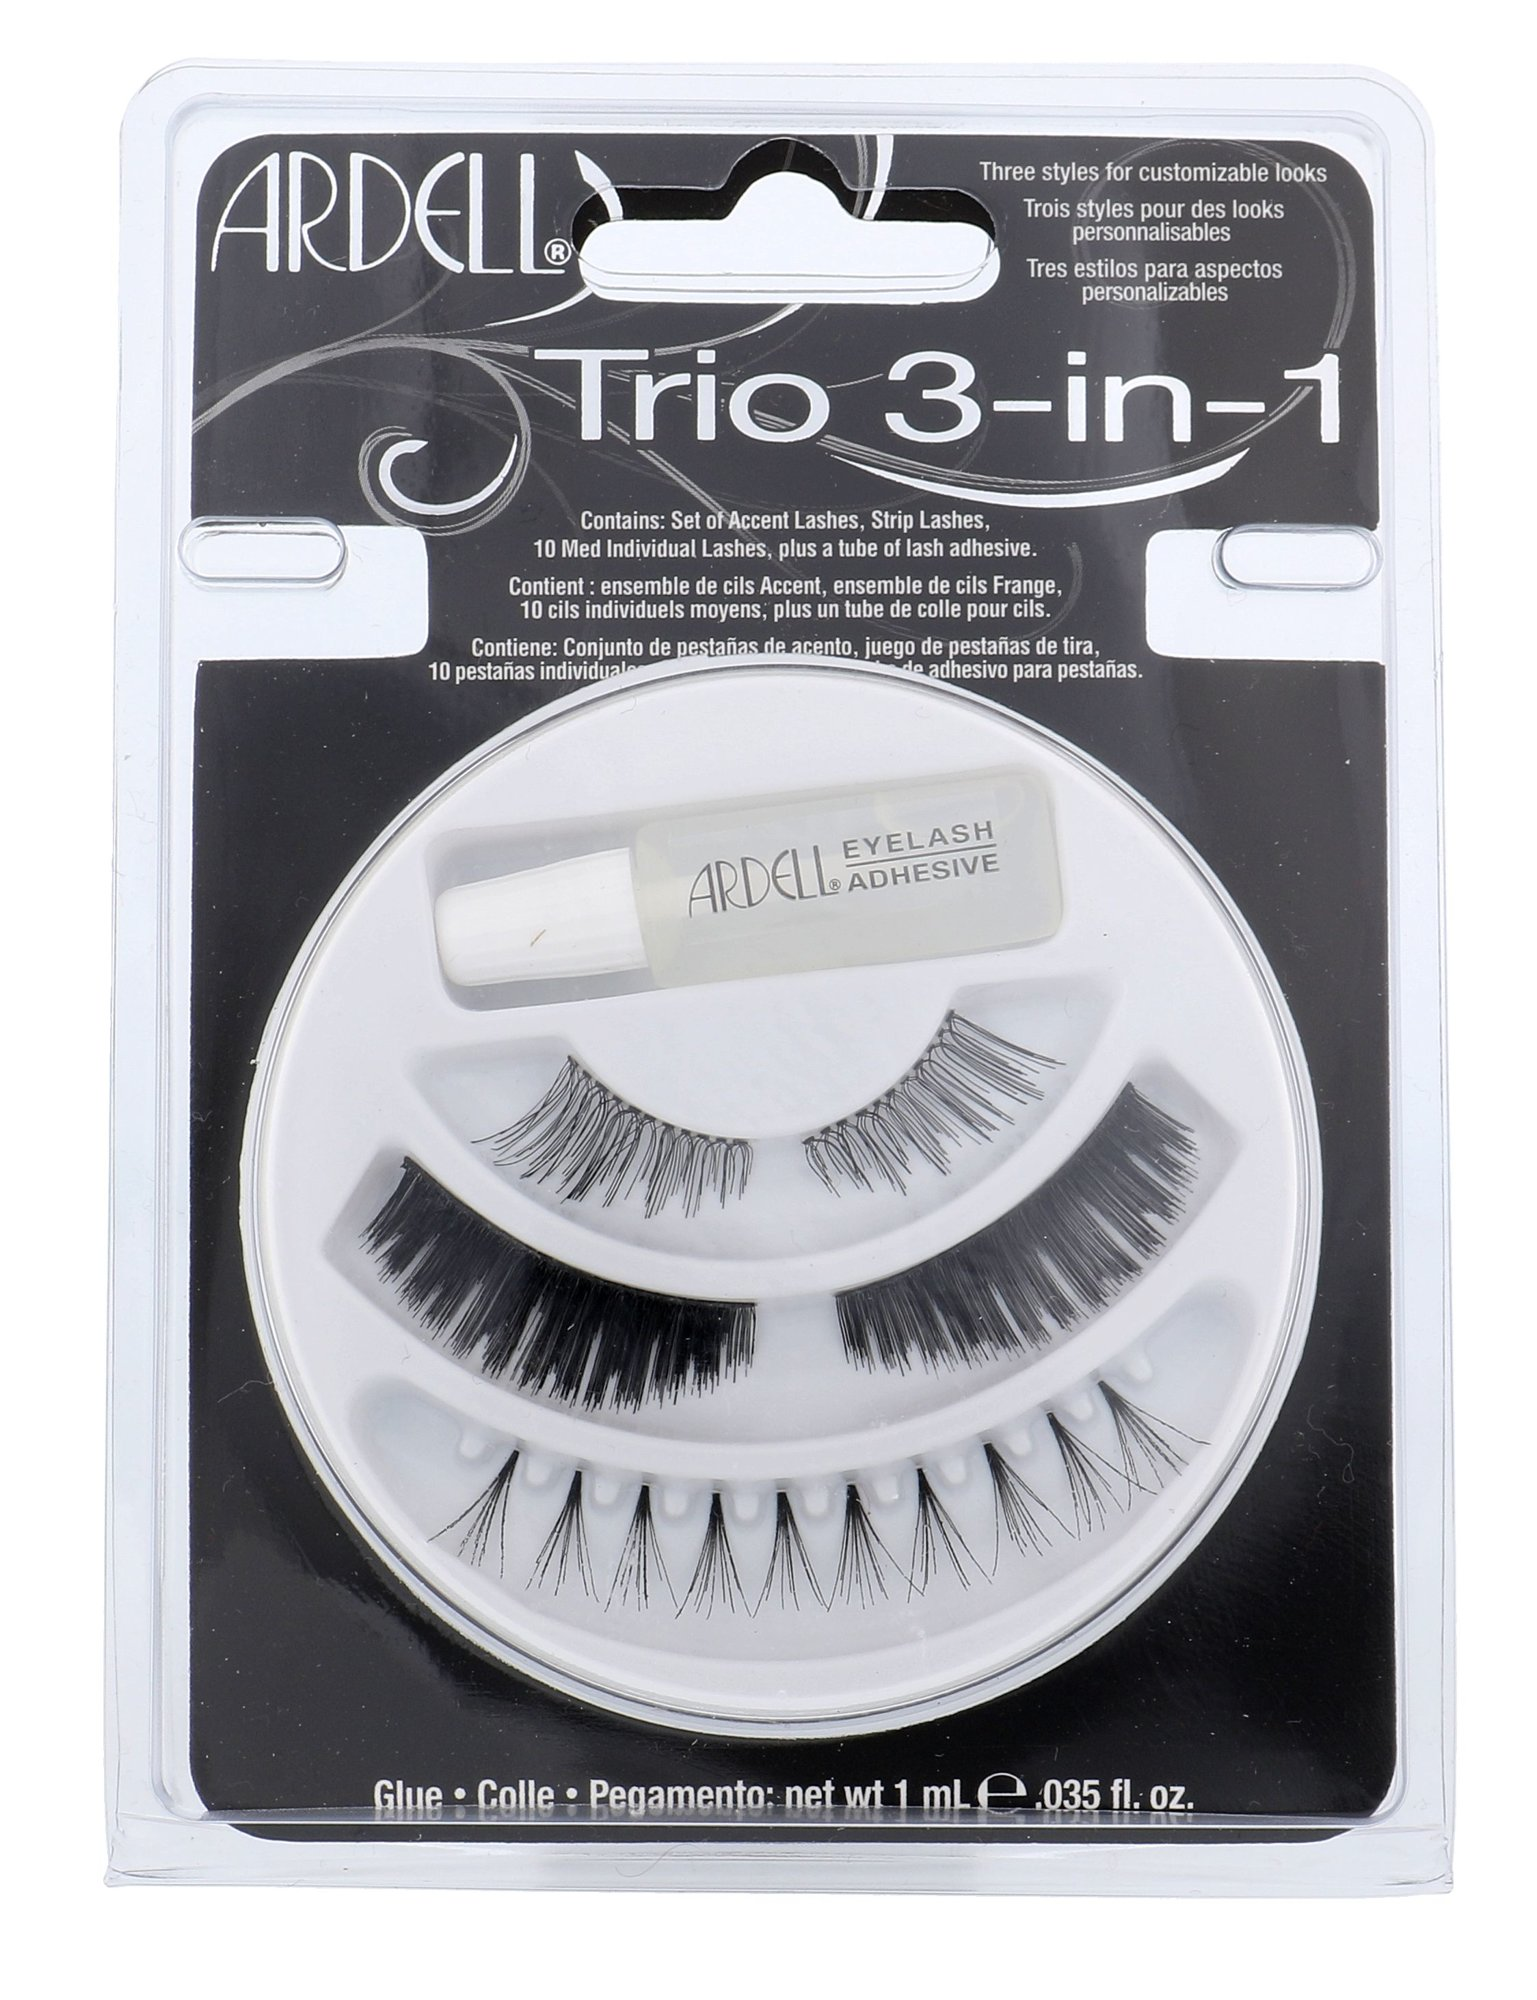 Ardell Trio 3-in-1 Cosmetic 1ml Black